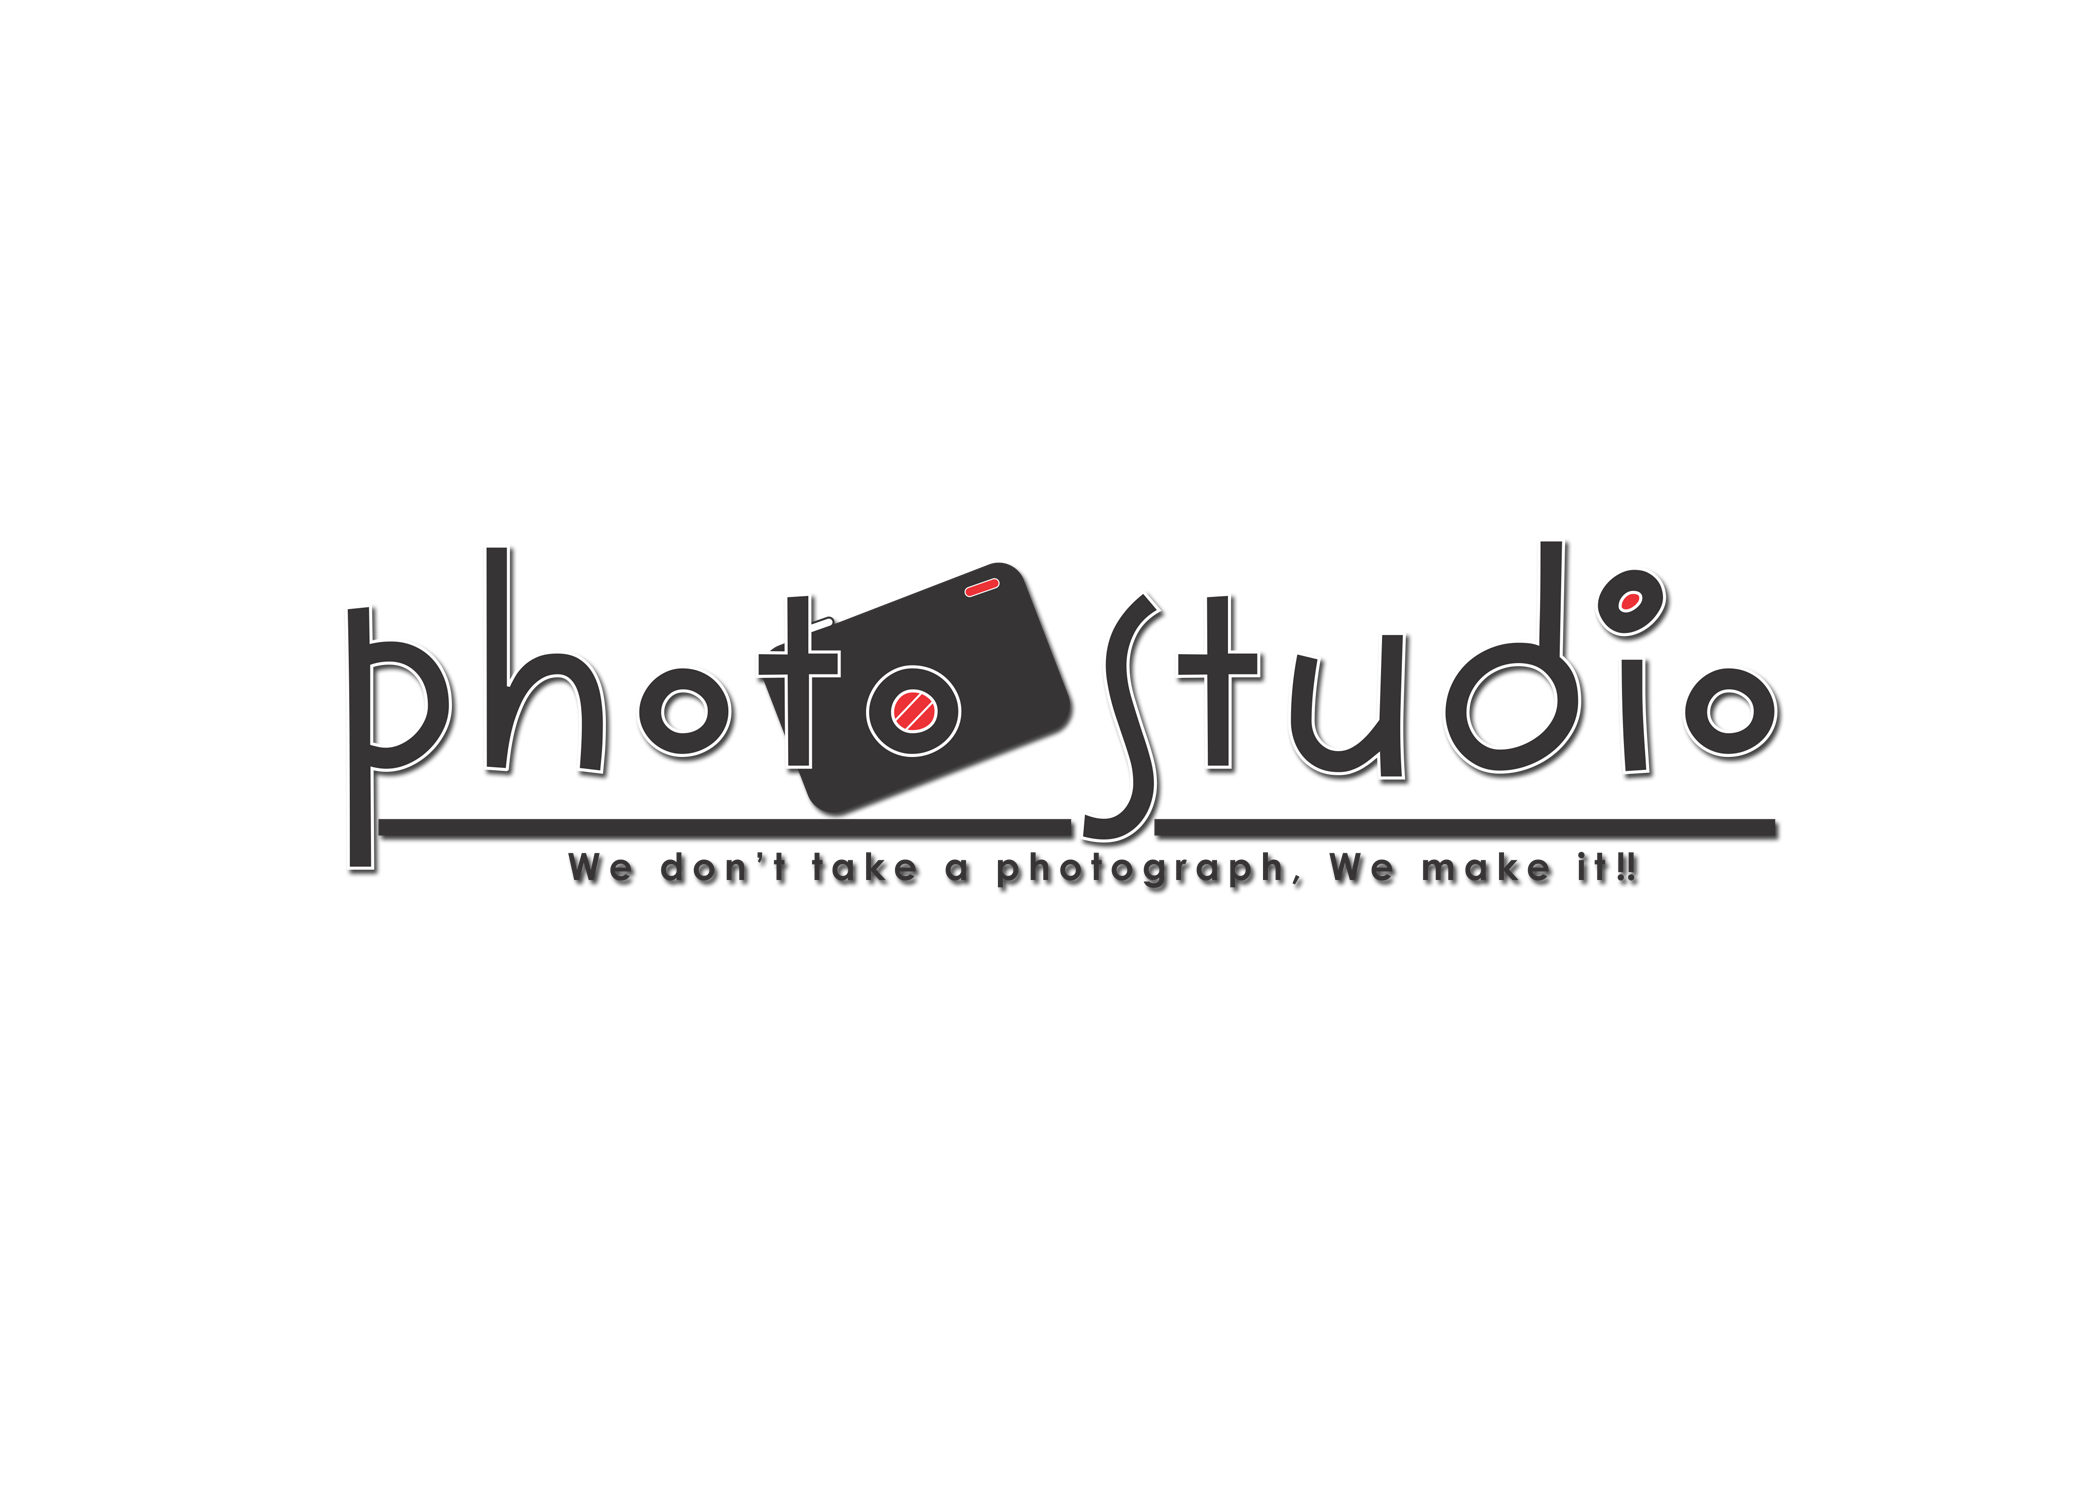 Photography Logo Design also 443745369518420700 furthermore Stock Illustration Barbershop Hair Salon Logo Vintage Vector Set Hipster Retro Style Perfect Your Business Design Image50239272 besides Creative Logo Design together with Best Photography Logos Free Download. on free watermark logos for photographers